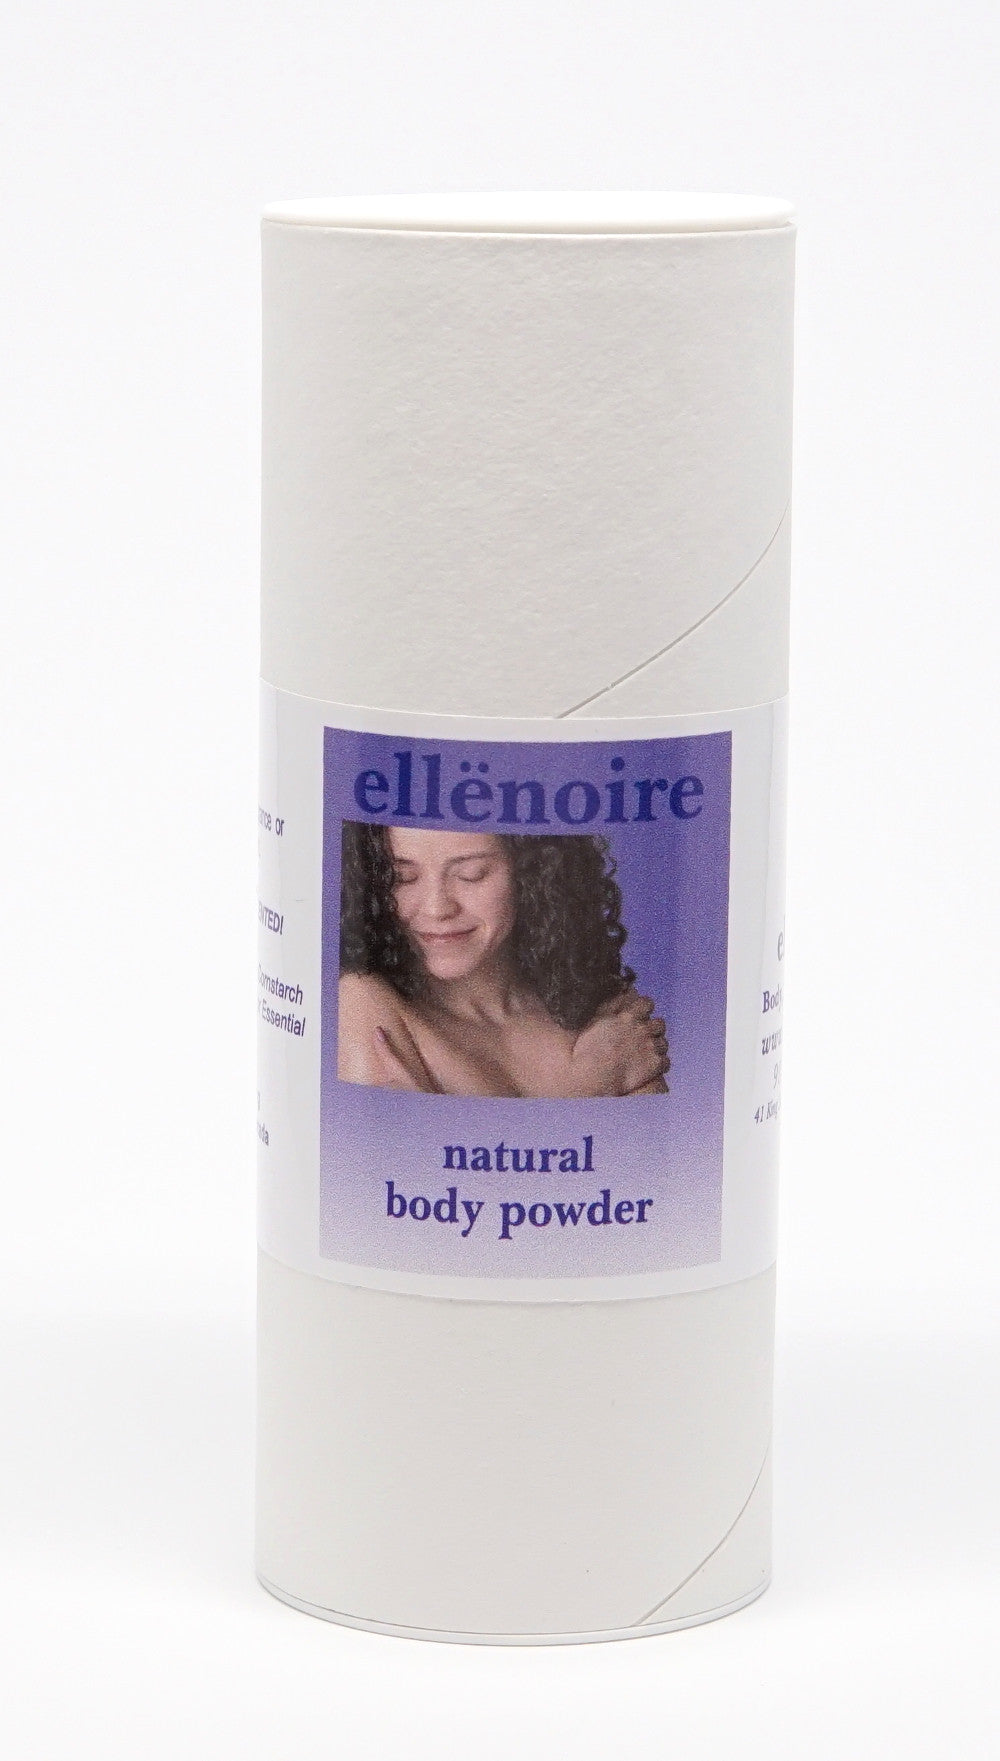 ellënoire Natural Body Powder-Bath Products-ellënoire body, bath fragrance & curly hair